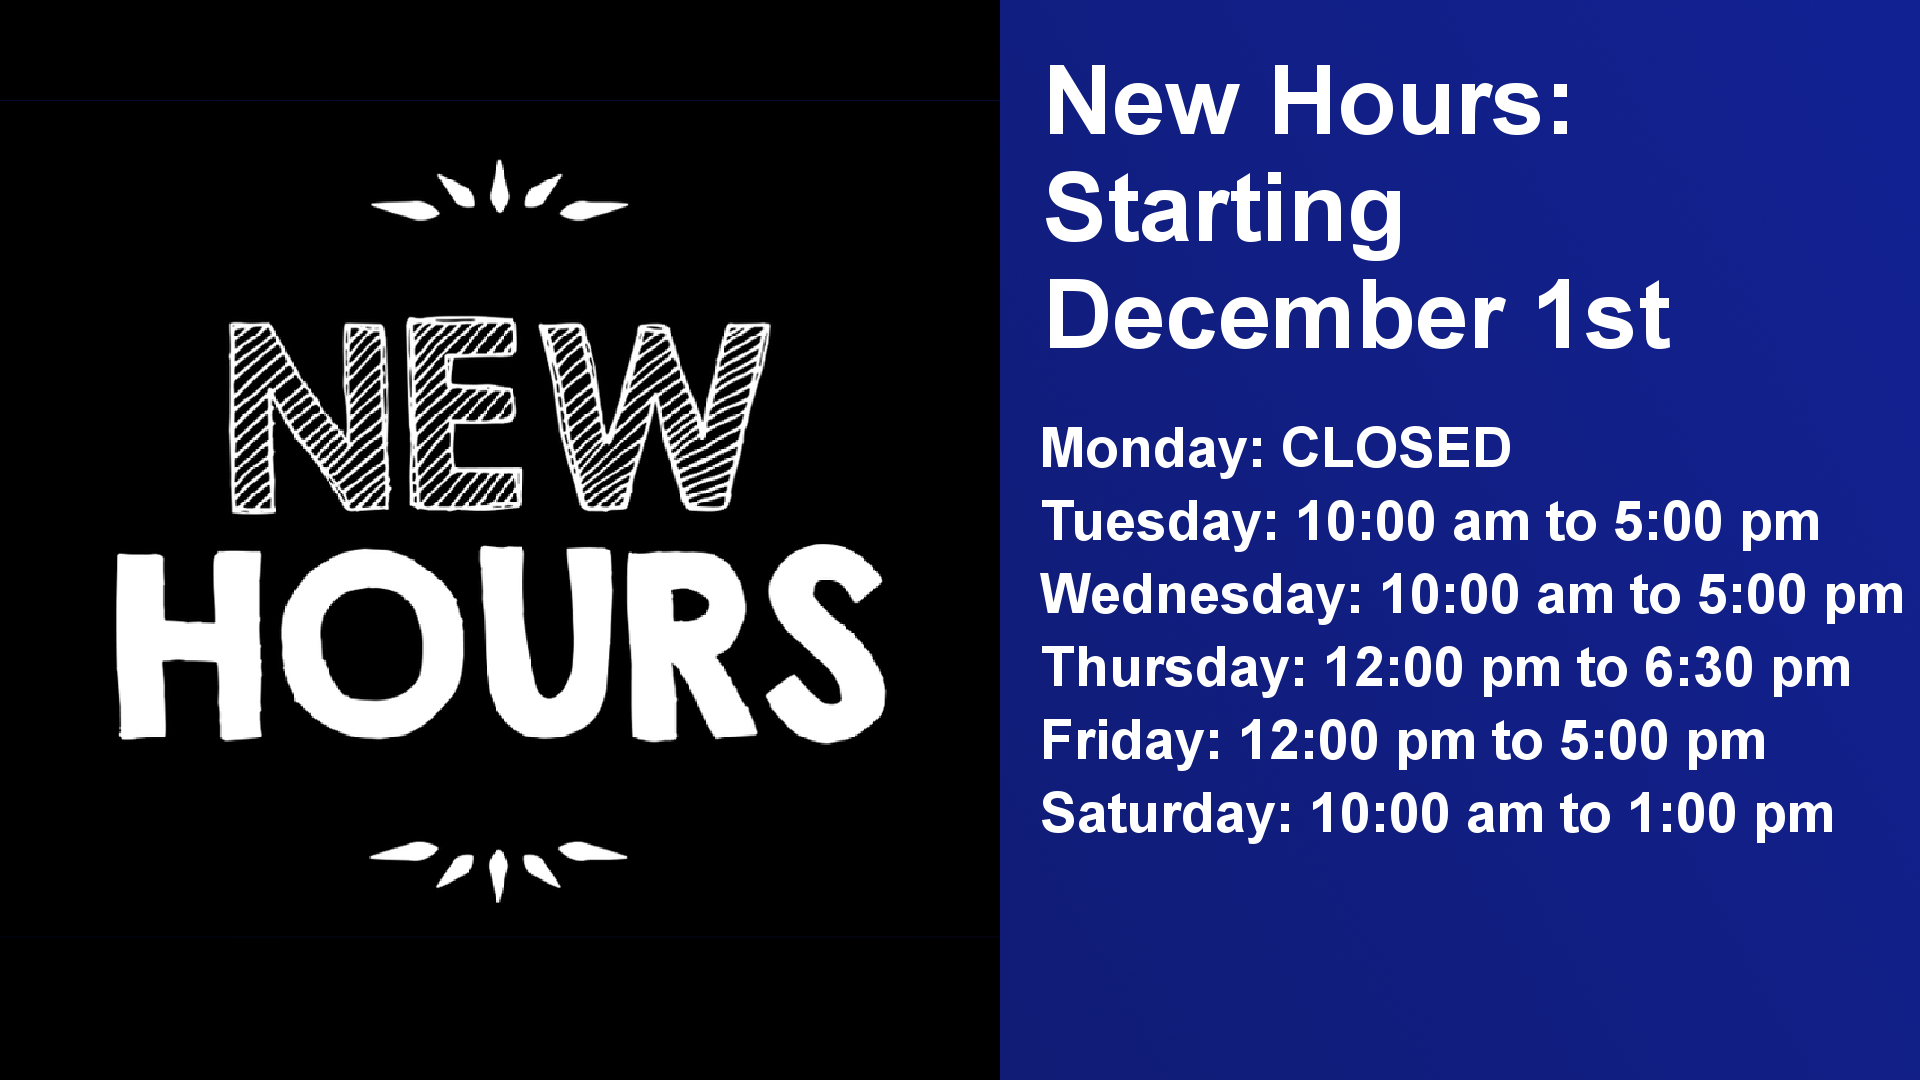 New Hours starting December 1st. Monday: Closed Tuesday 10 am to 5 pm Wednesday: 10 am to 5 pm Thursday: 12 pm to 6:30 pm Friday: 12 pm to 5 pm Saturday 10 am to 1 pm